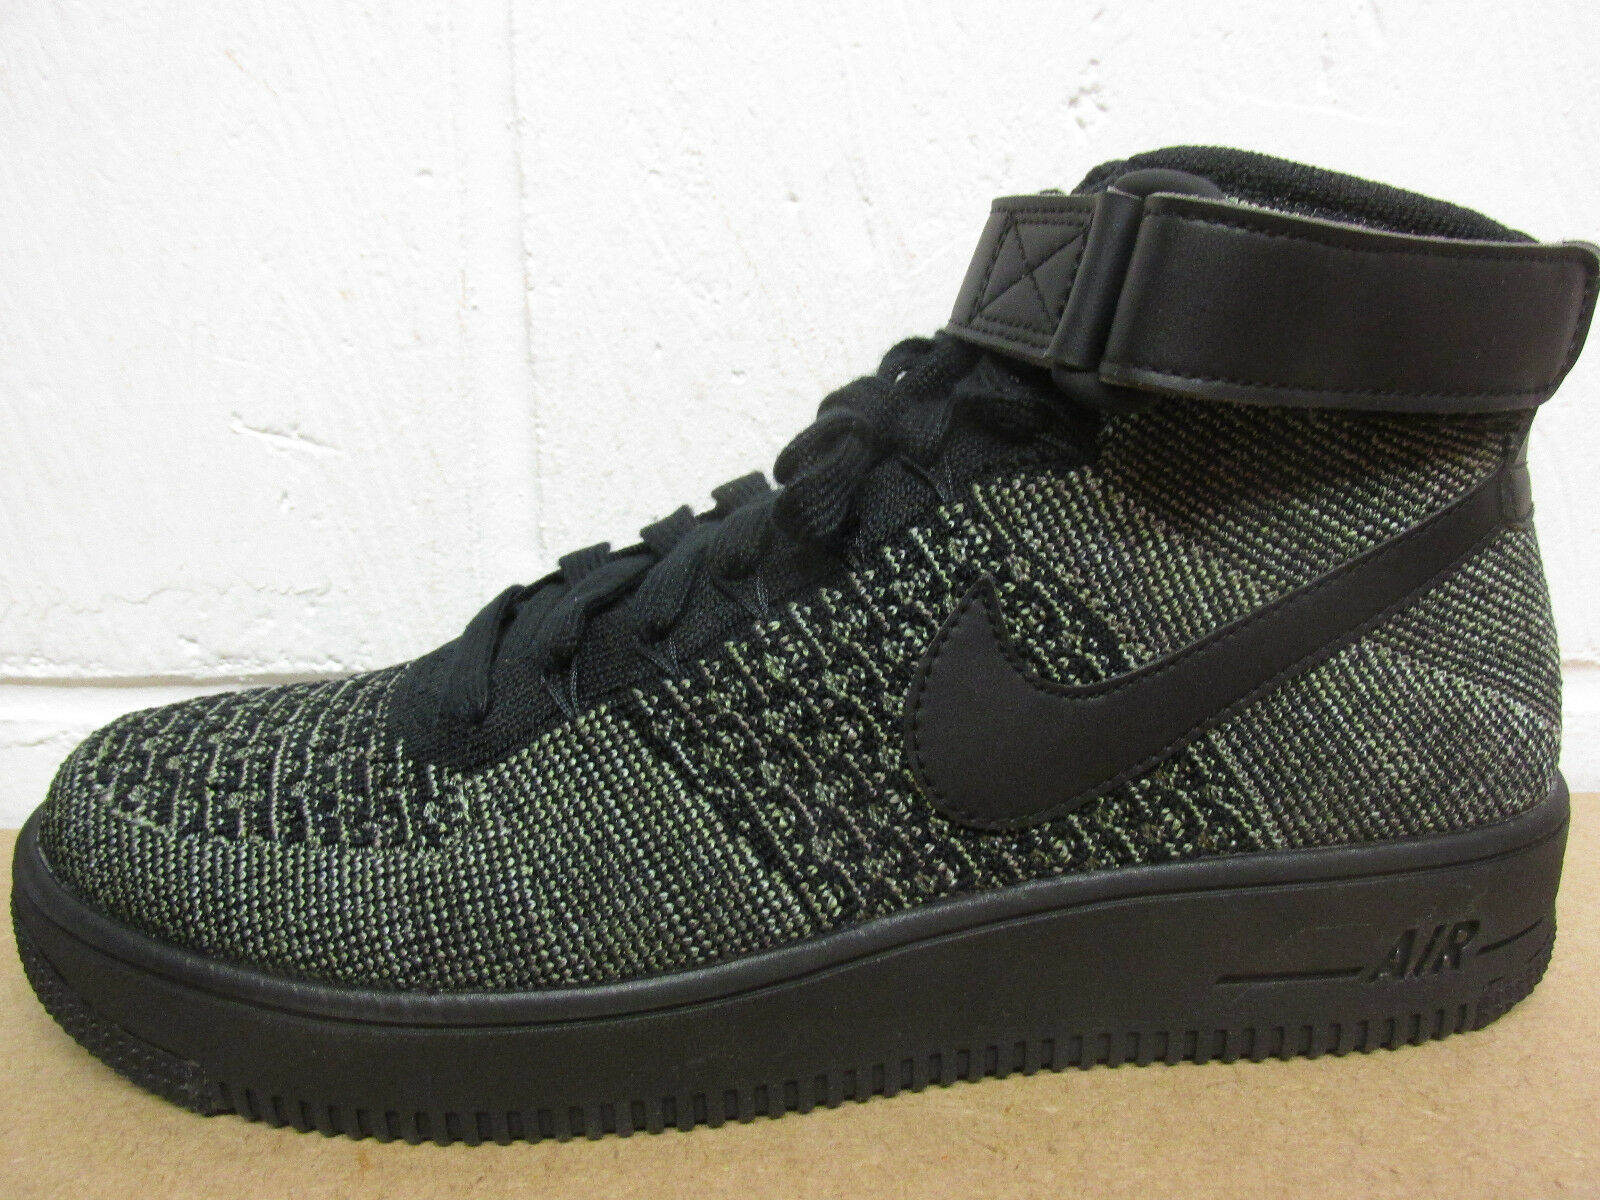 Nike Hombre AF1 Ultra Trainers Flyknit Mid Hombre Nike Trainers Ultra 817420 301   b31dbc